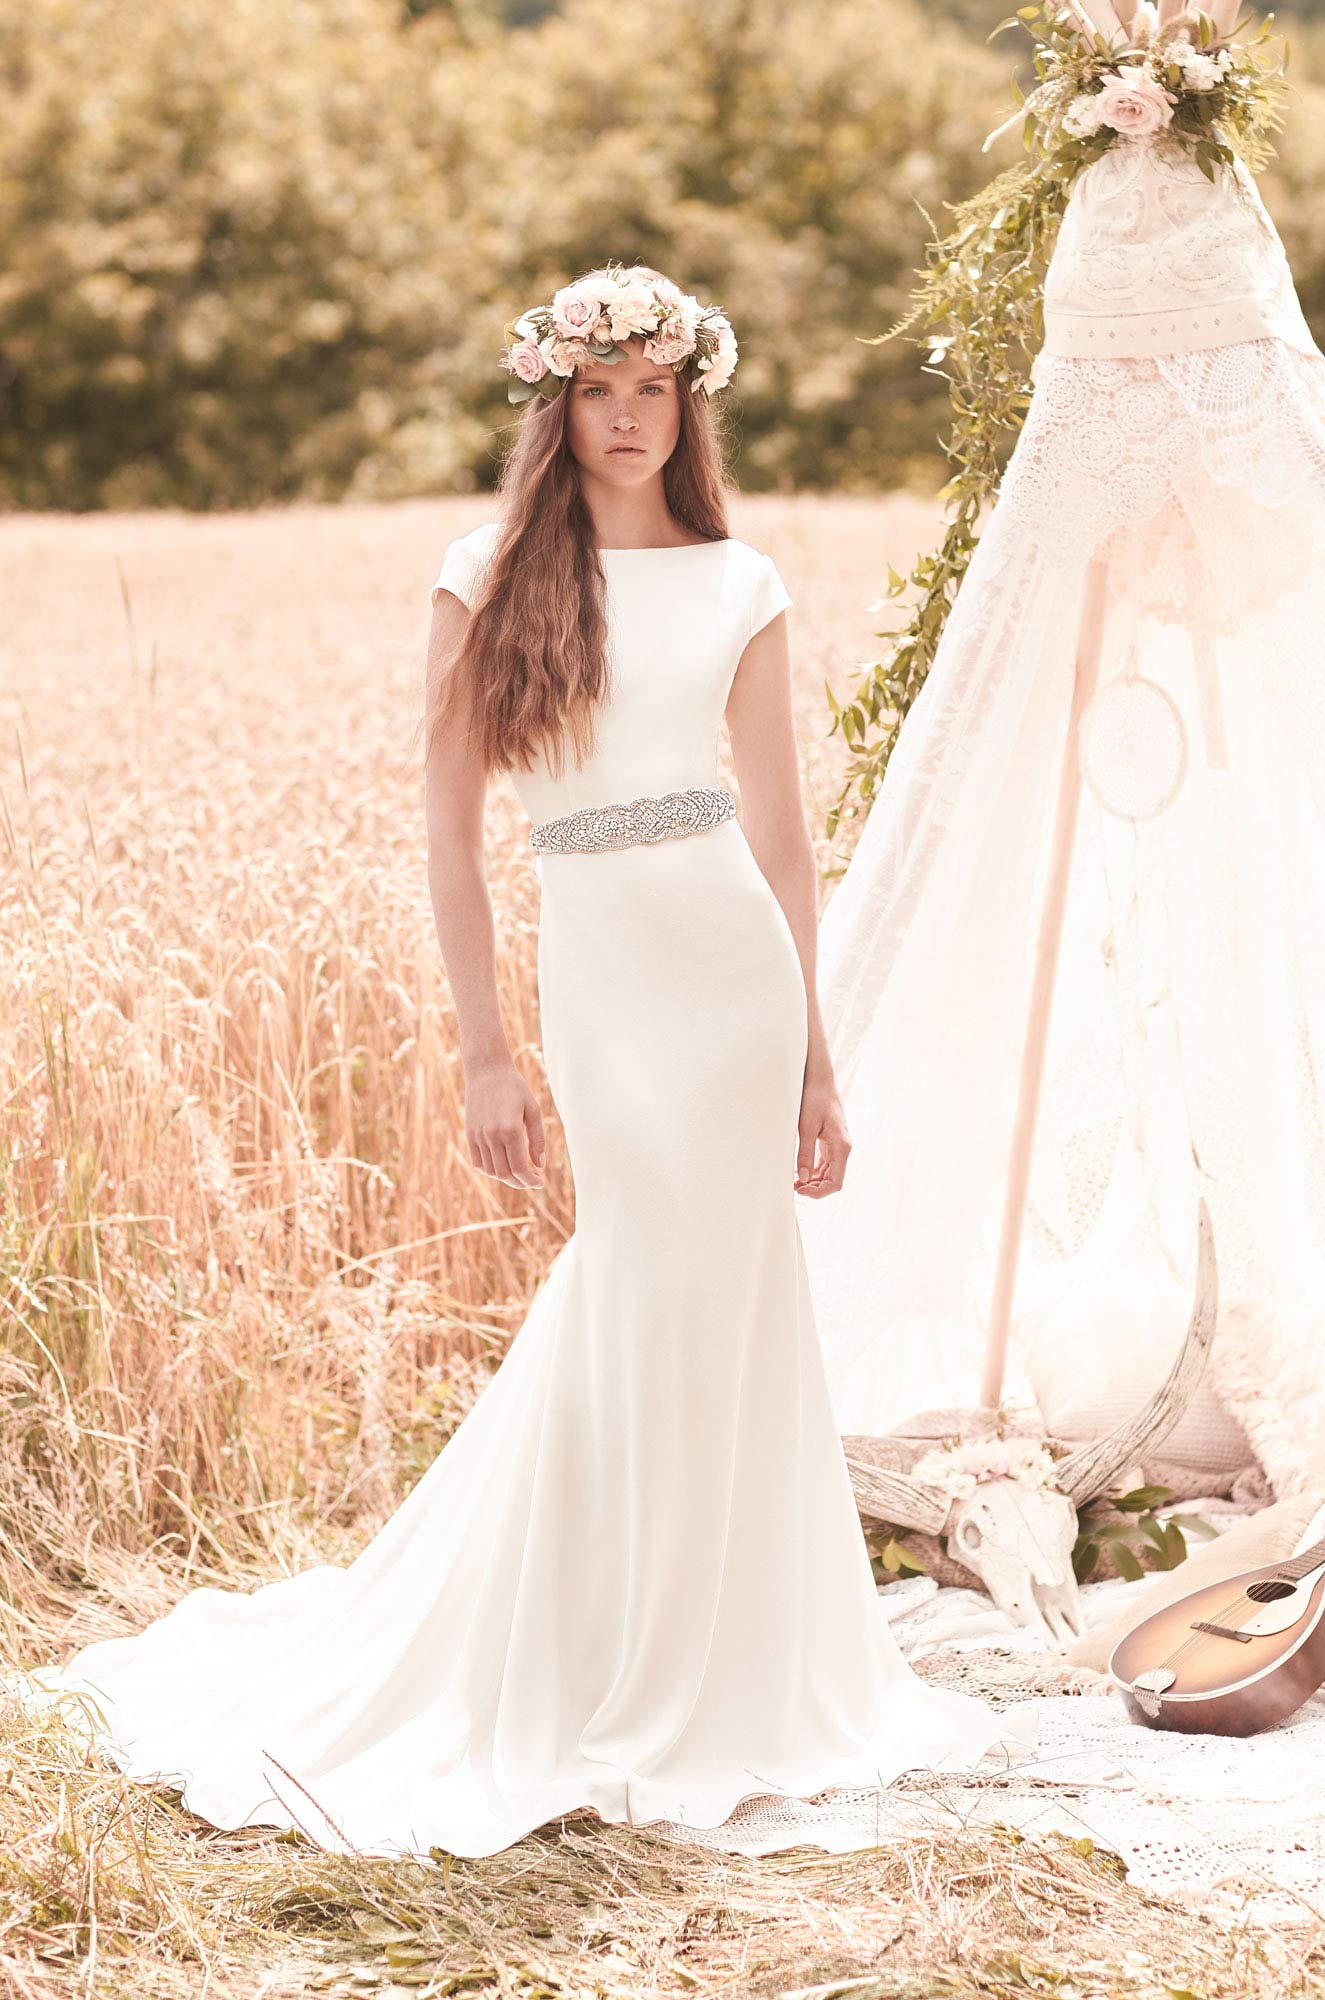 Cap sleeve wedding dress style 2061 mikaella bridal for Wedding dresses with capped sleeves